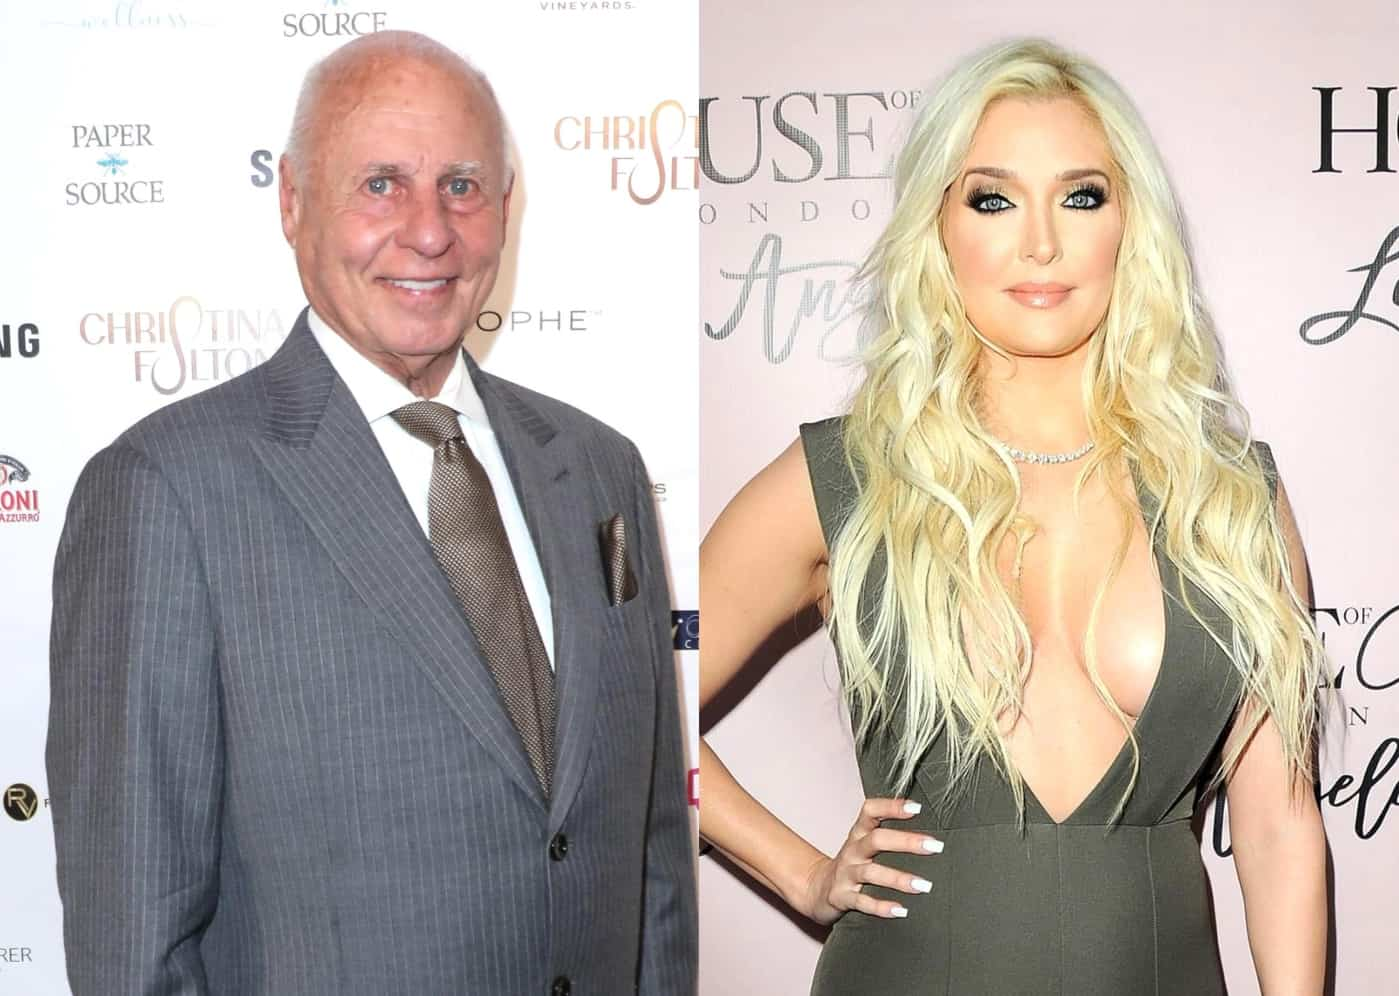 RHOBH: Erika Jayne's Estranged Husband Thomas Girardi Has Been Ordered to Vacate Their $15 Million Pasadena Home as the Attorney is Once Again Accused of Embezzling Settlement Funds